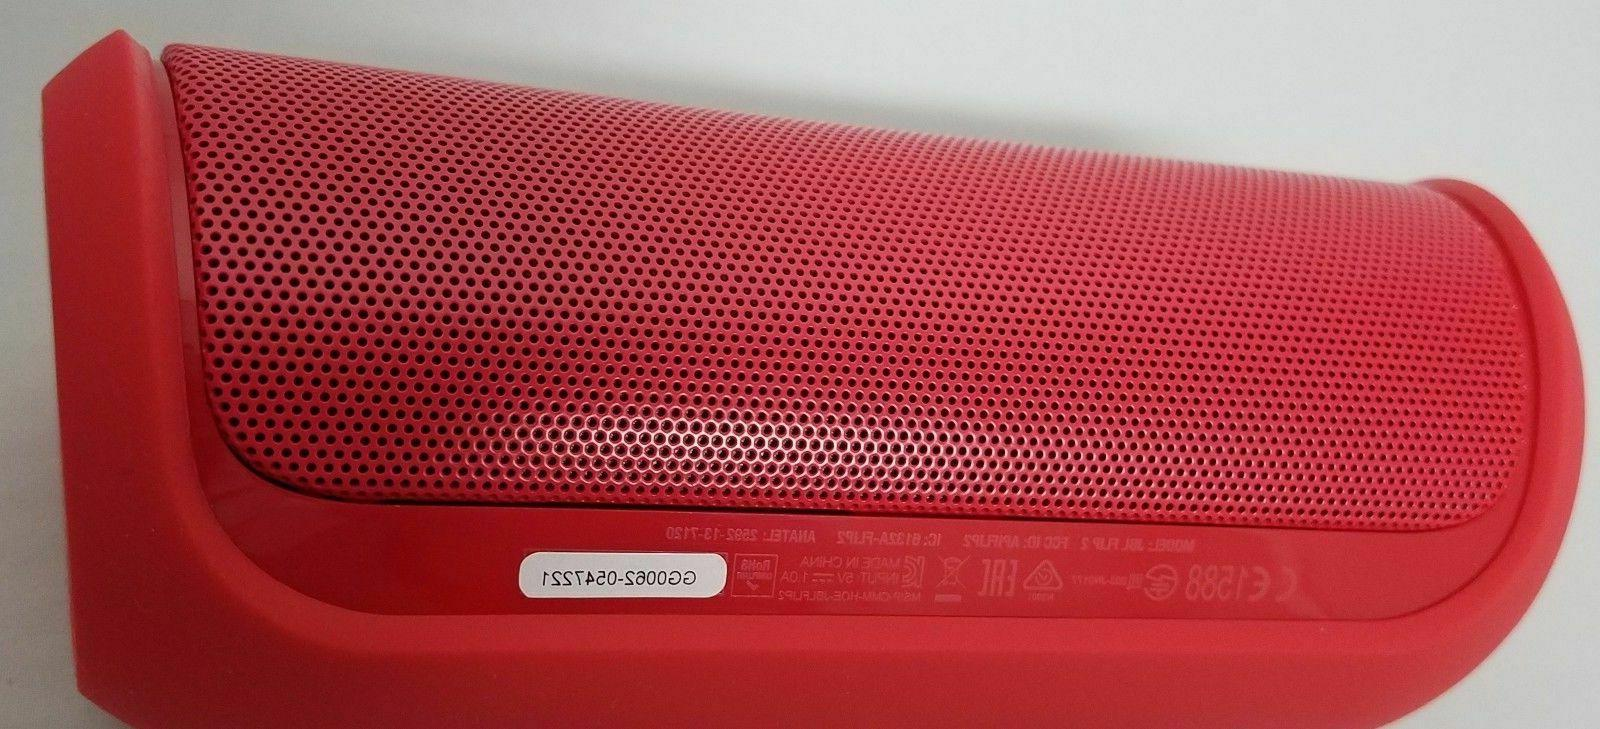 JBL Wireless Bluetooth Stereo Speaker NFC Harman New